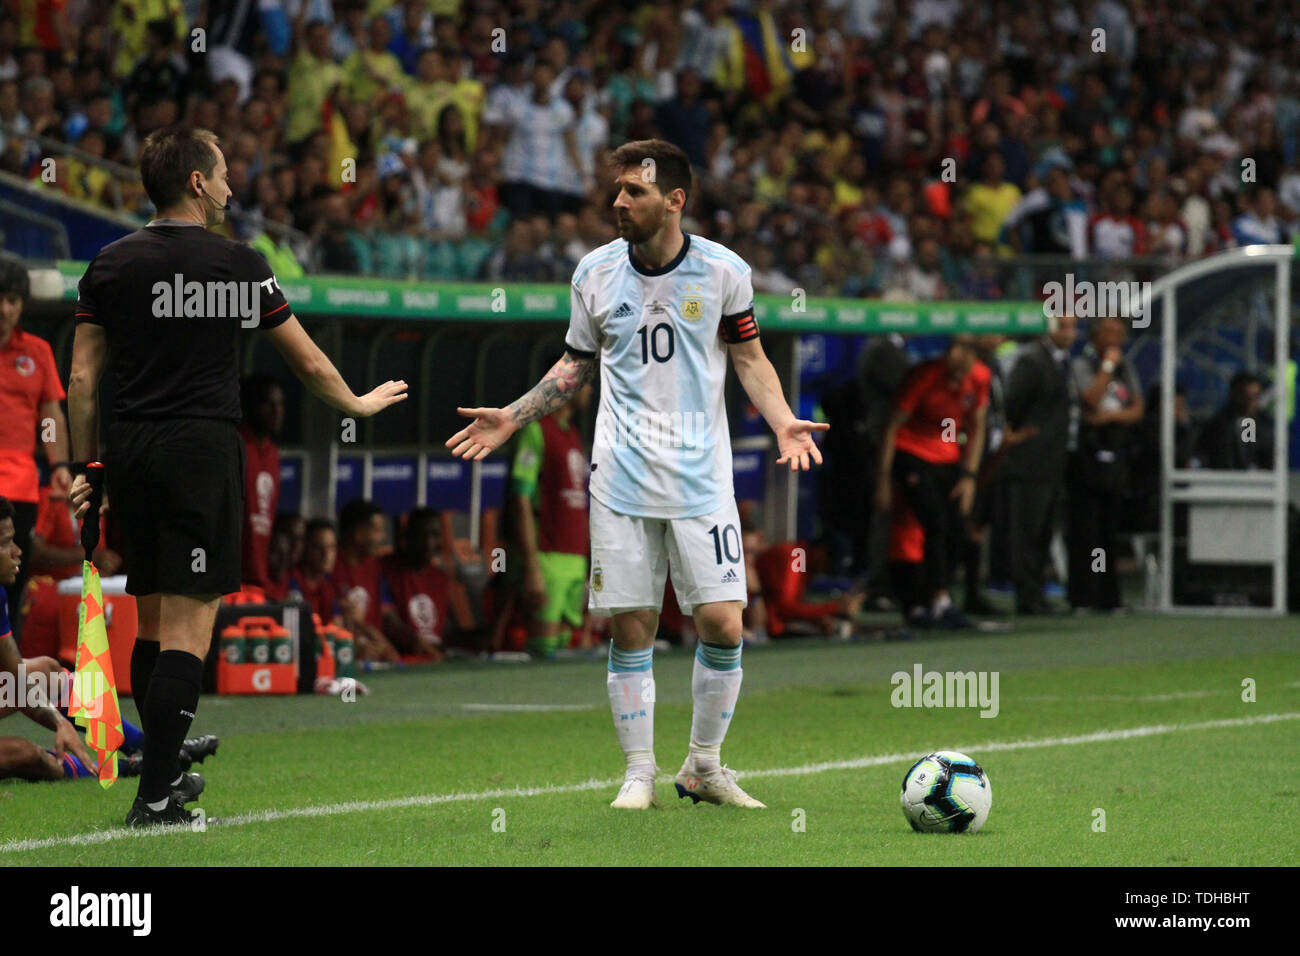 Salvador, Brazil. 15th June, 2019. Messi during match between Argentina and Colombia, game 03, valid for the group phase of Copa América 2019, held this Saturday, 15, at the Arena Fonte Nova in Salvador, BA. Credit: Mauro Akiin Nassor/FotoArena/Alamy Live News - Stock Image